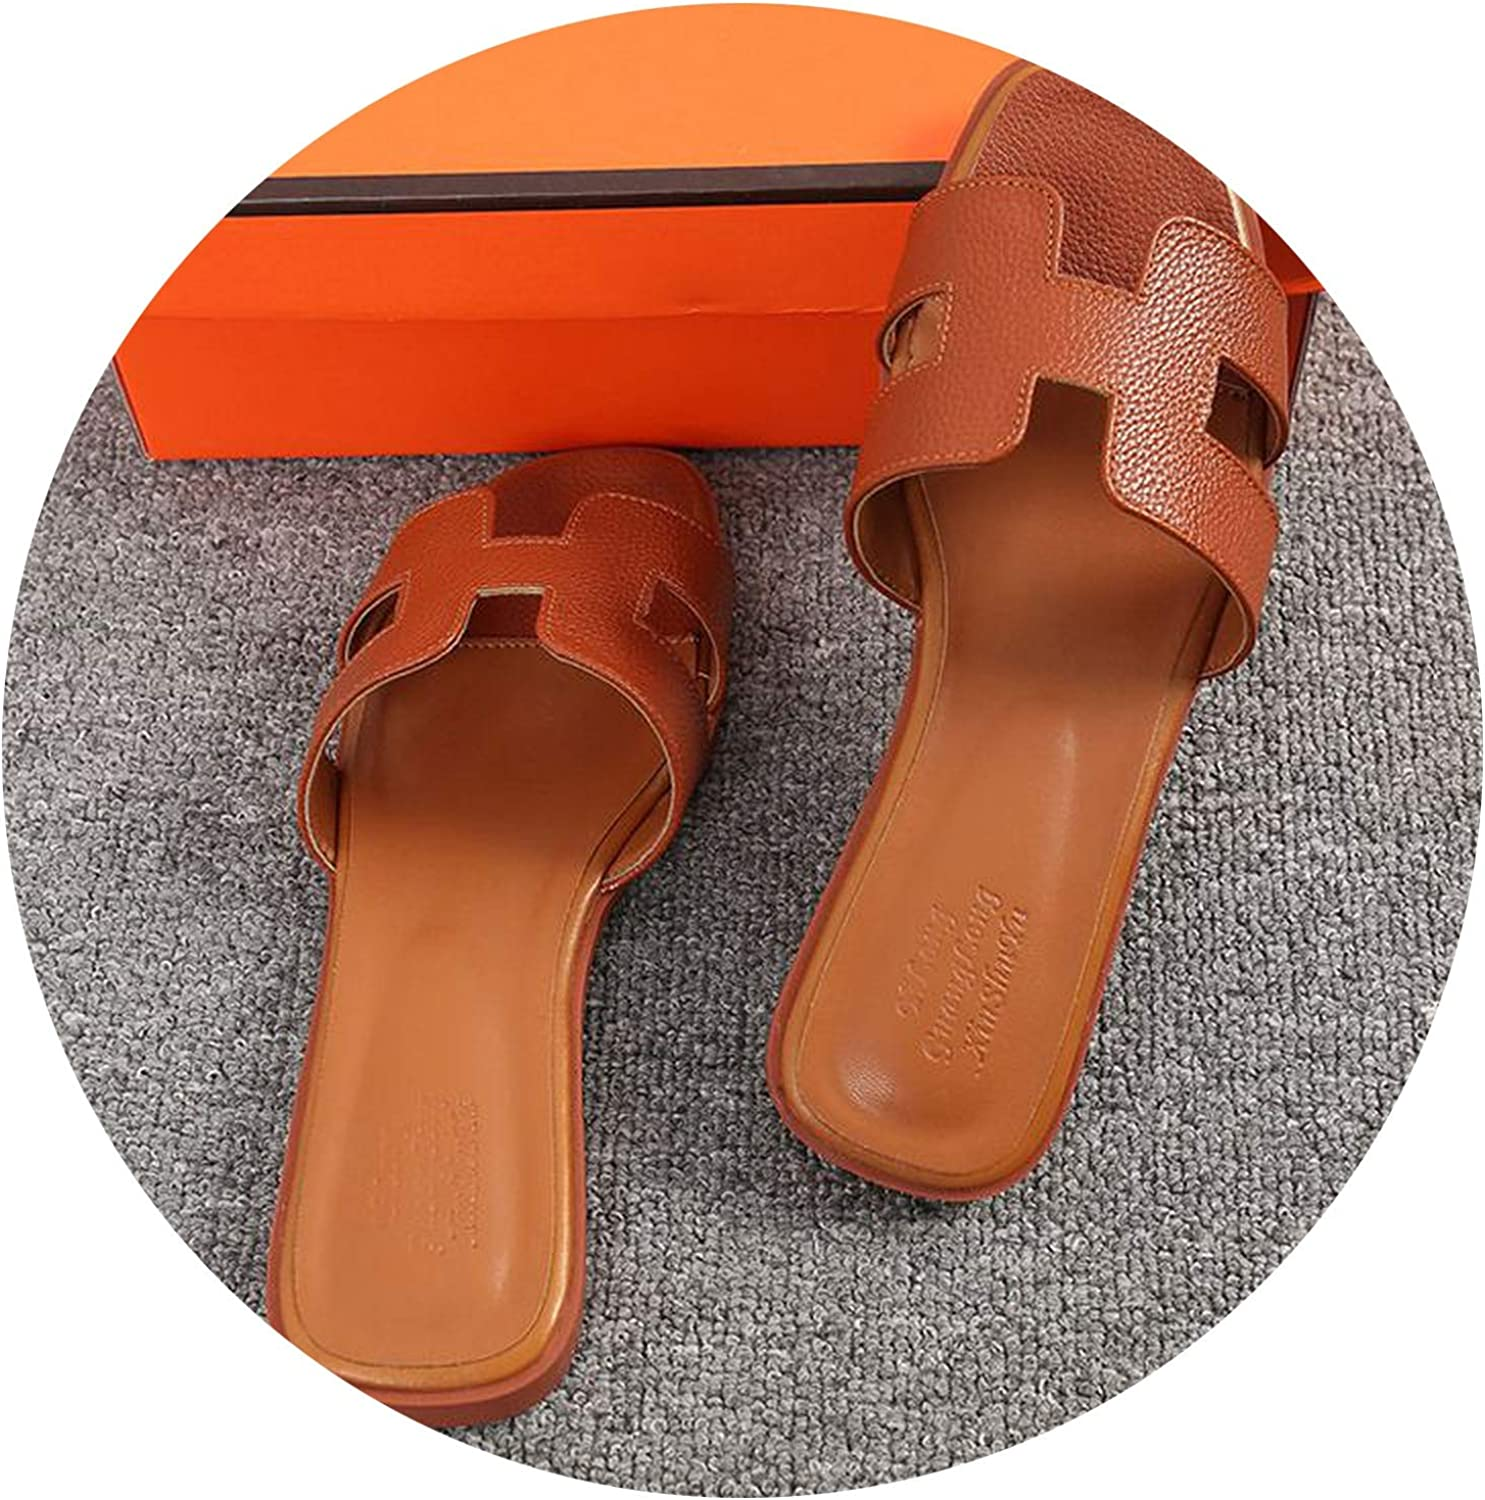 Baixa flats 2019 Women Brand Sandals Summer Luxury Flat Candy color Outdoor Holiday Slides Rome shoes Female Casual Sandals Plus Size WF01